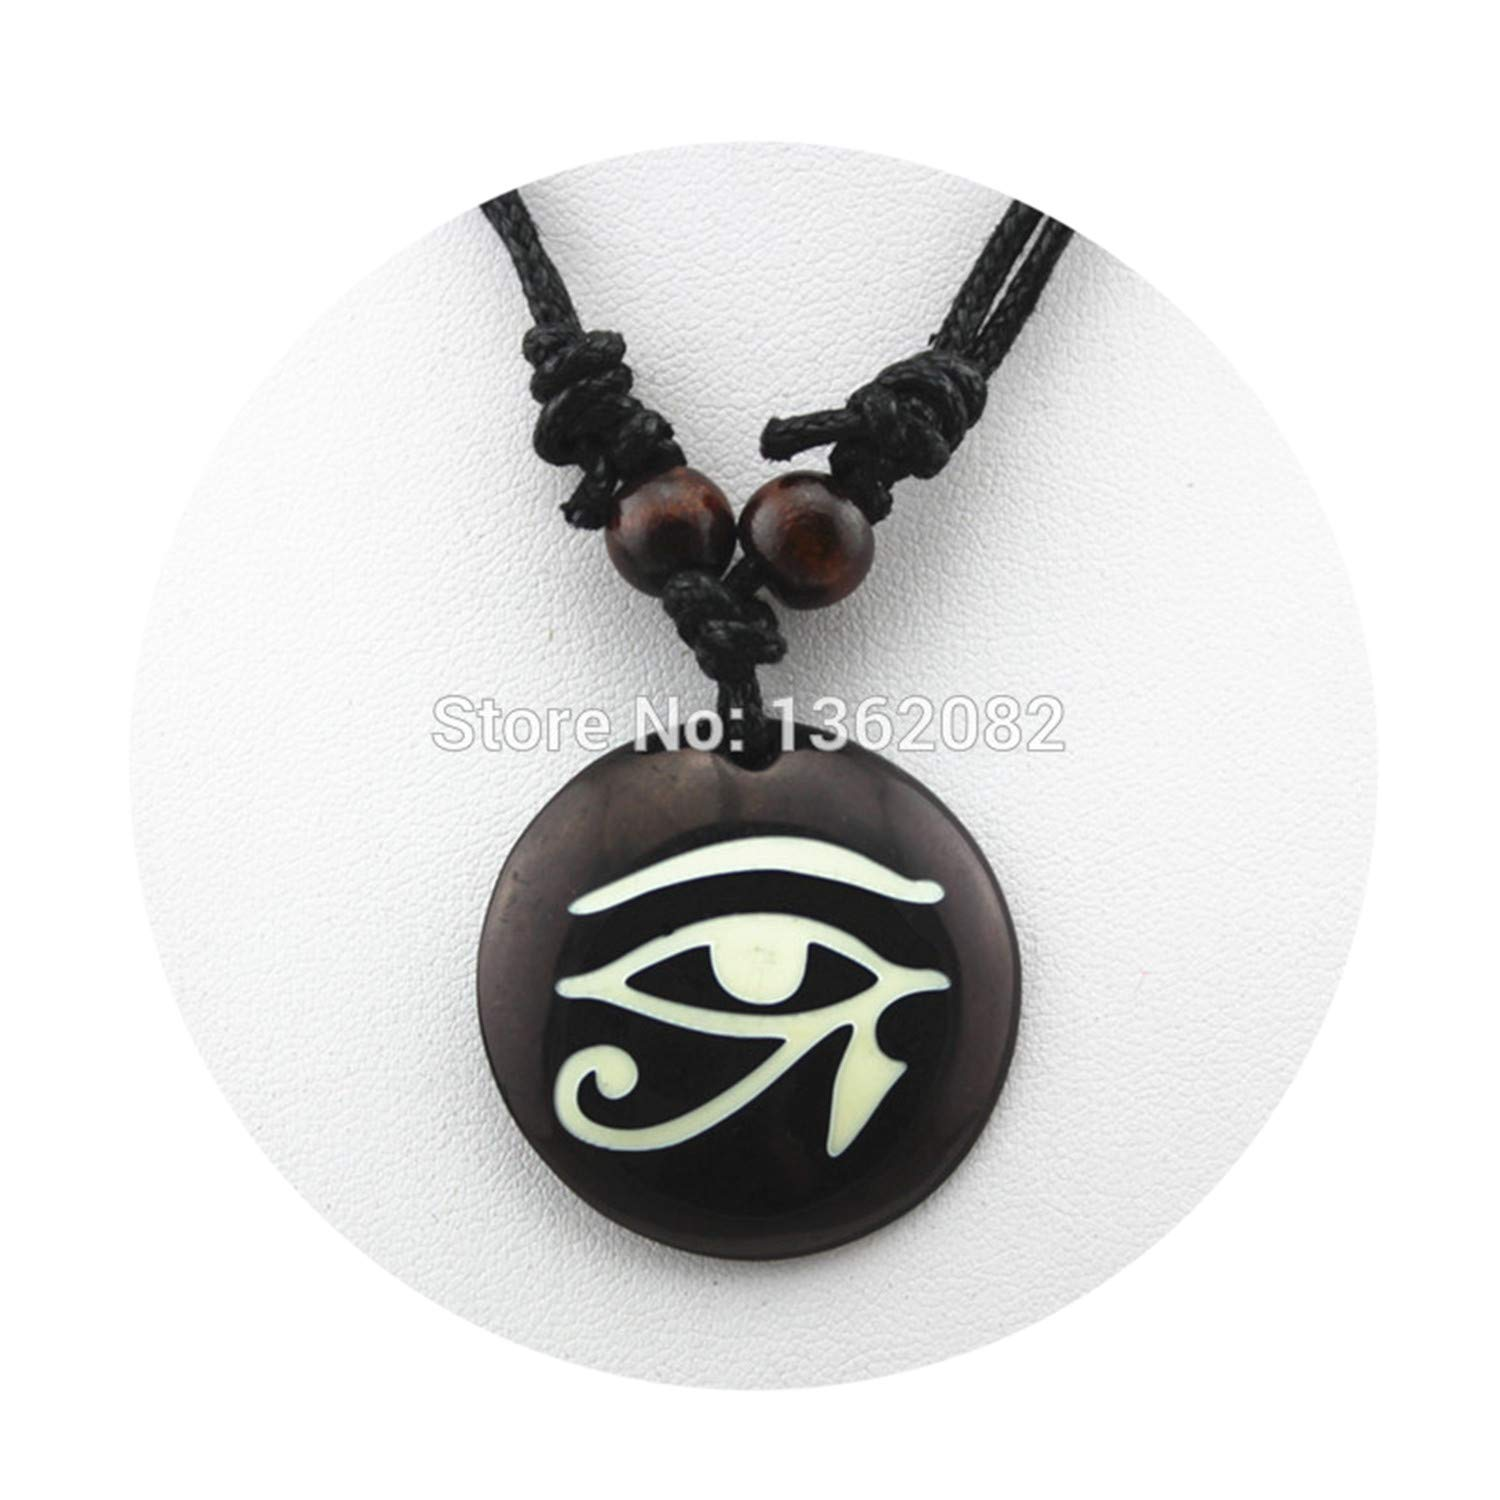 Best Gifts Imitation Yak Bone Resin Carved Egyptian The Eye Of Horus Pendant Necklace For Men Women Amazon Ca Jewelry